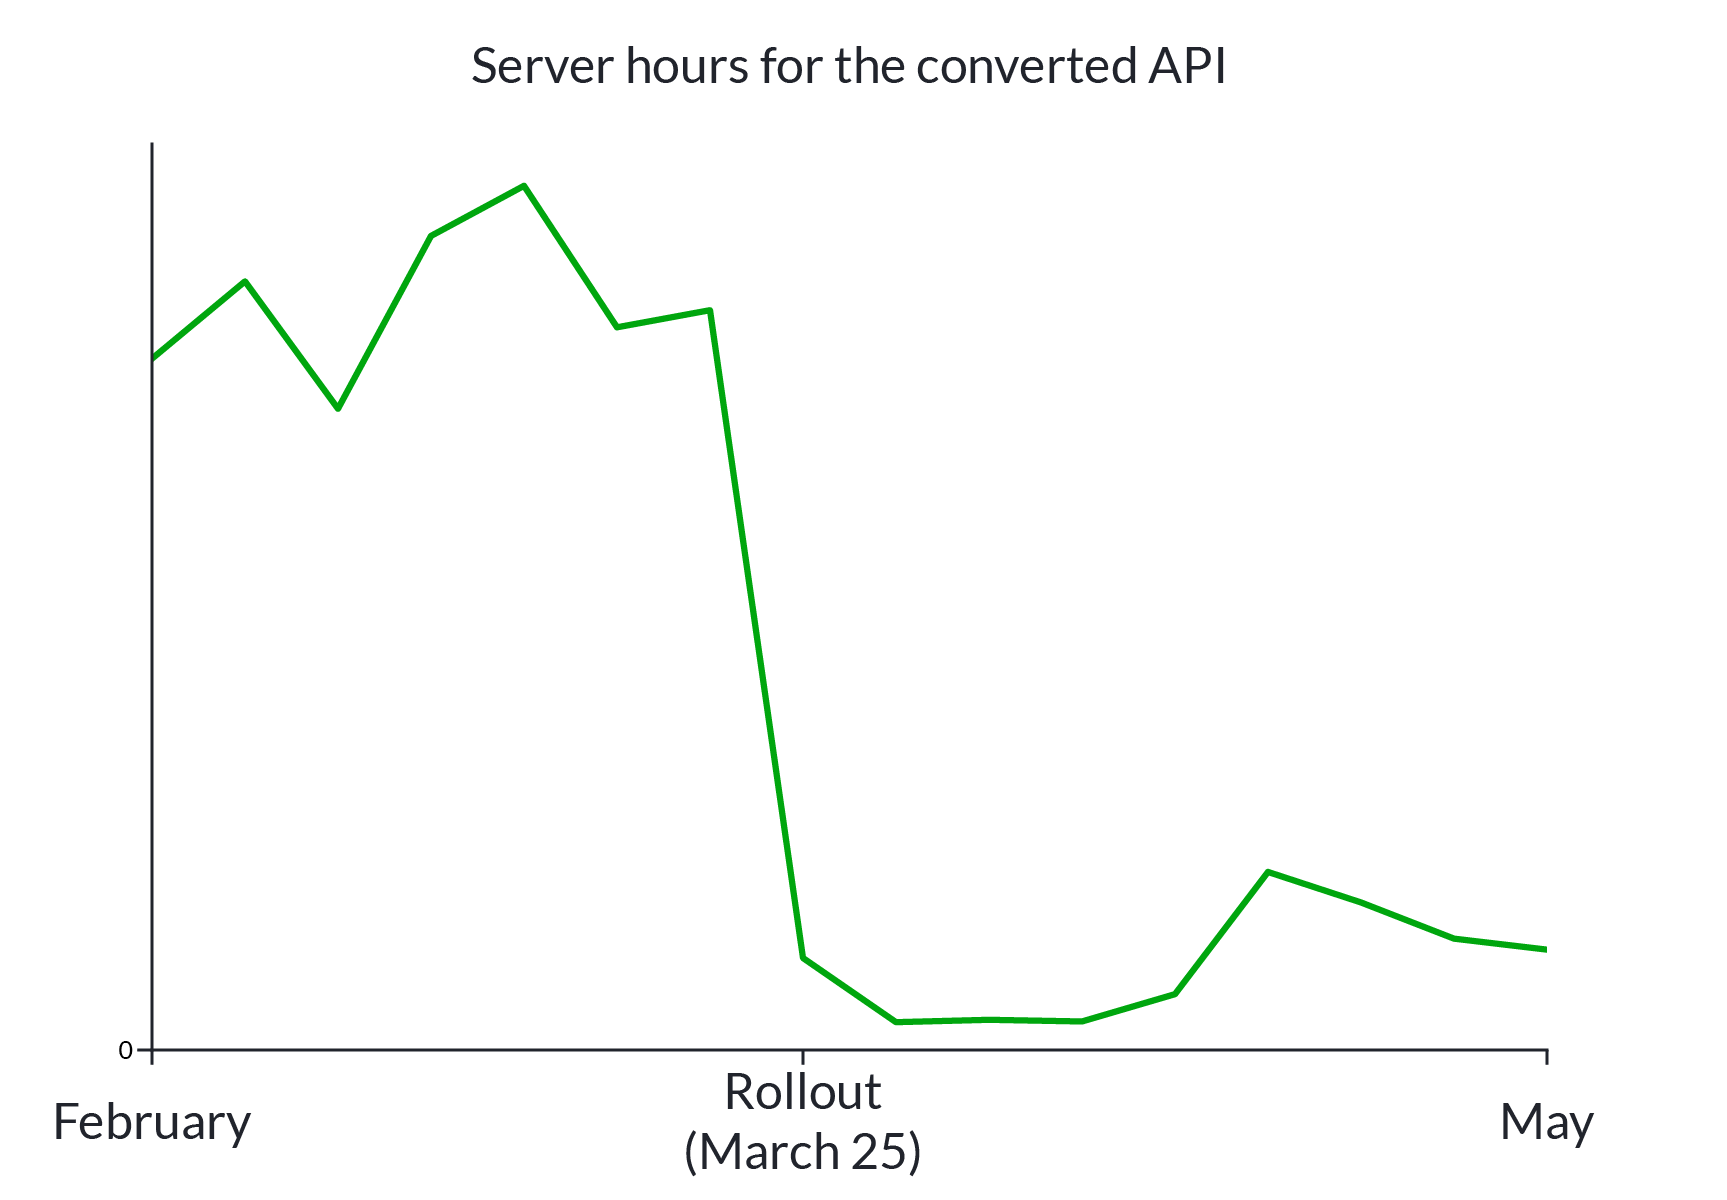 Server hours are down more than 10x